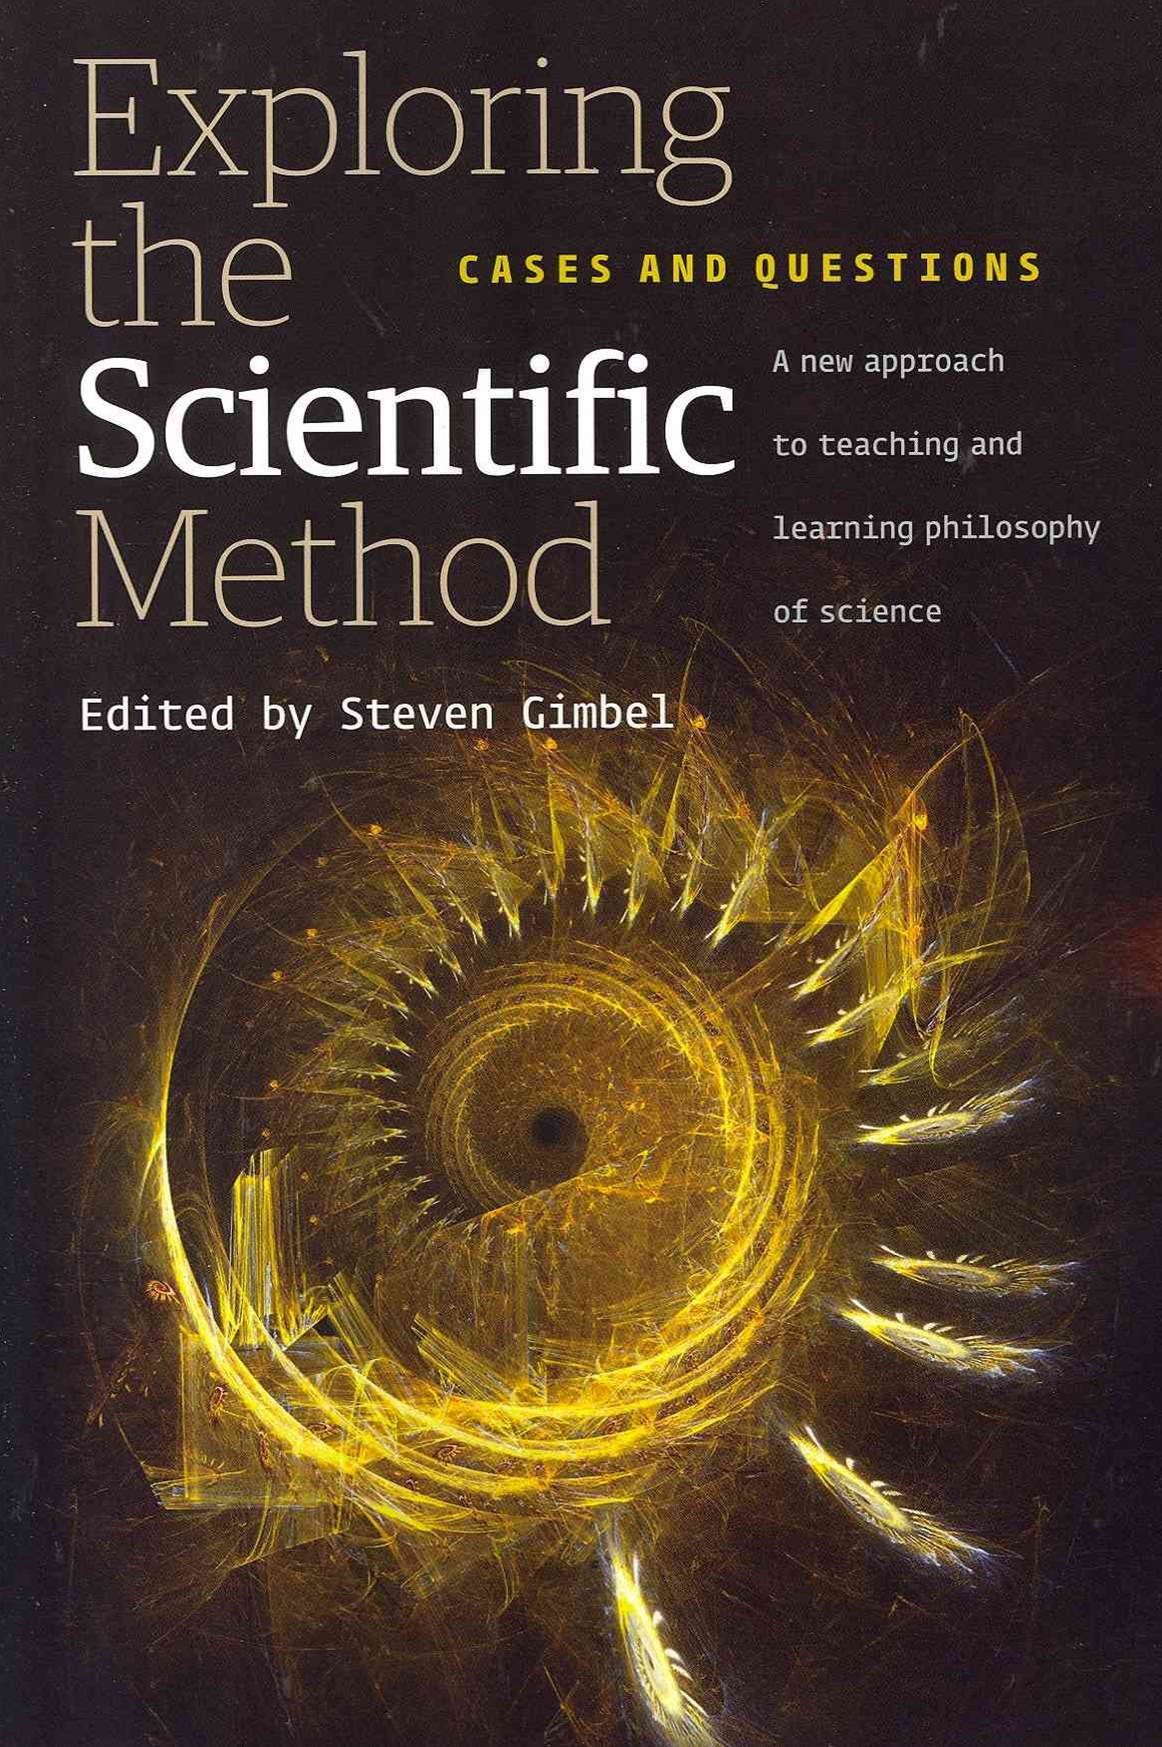 Exploring the Scientific Method